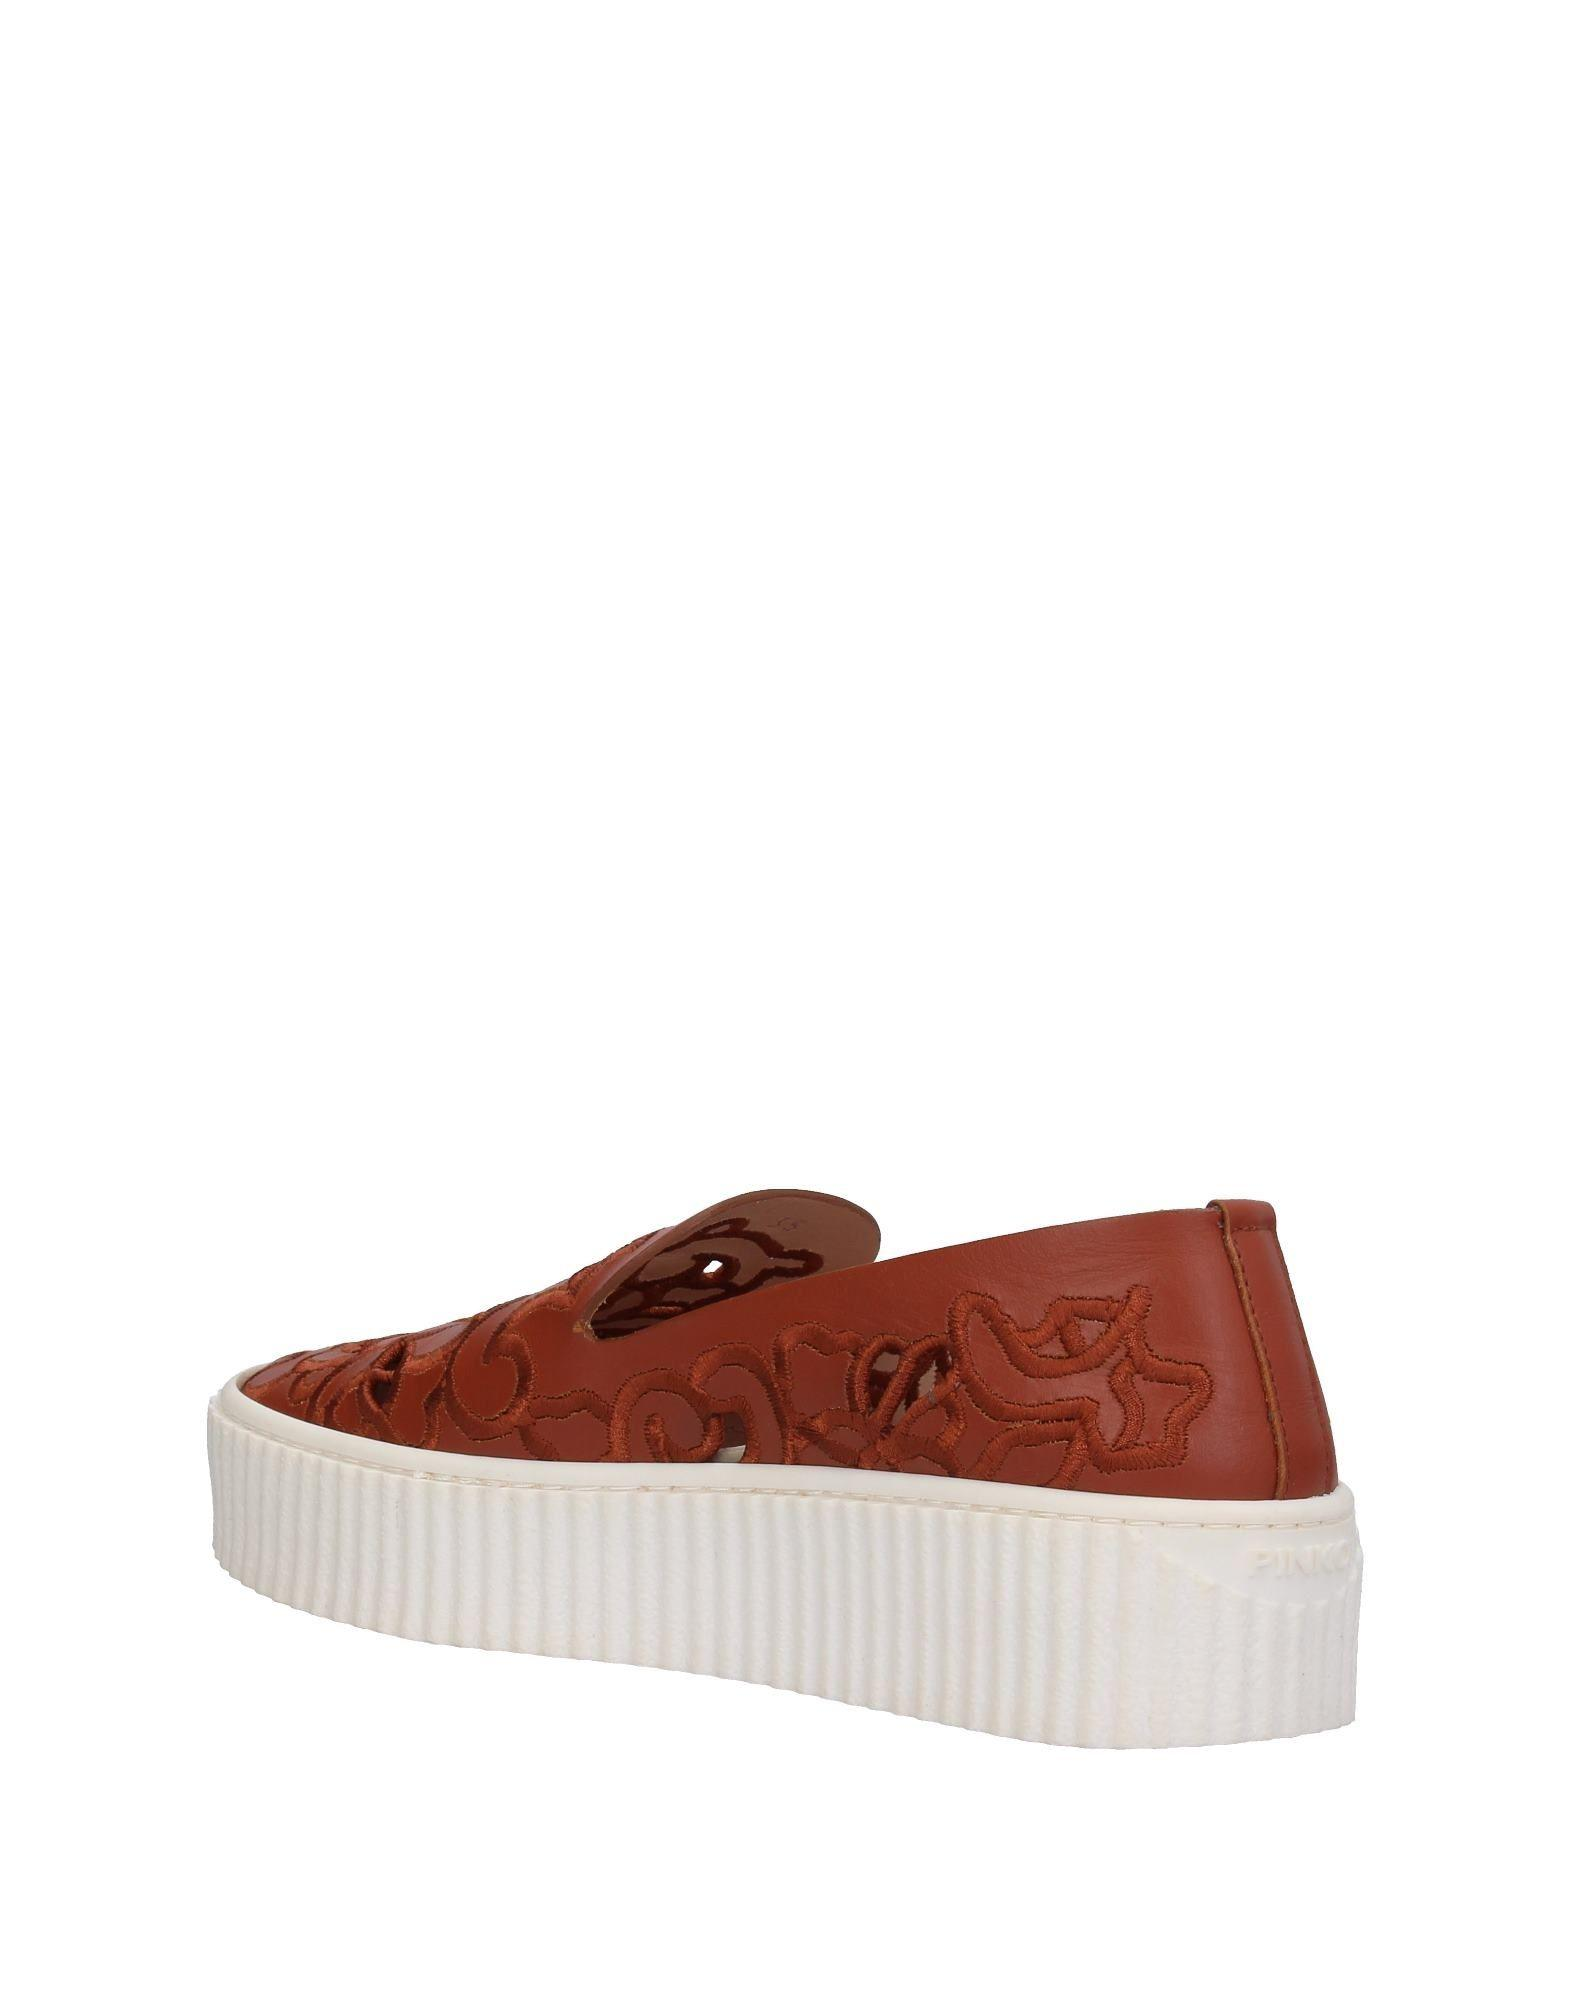 Pinko Leather Low-tops & Sneakers in Brown